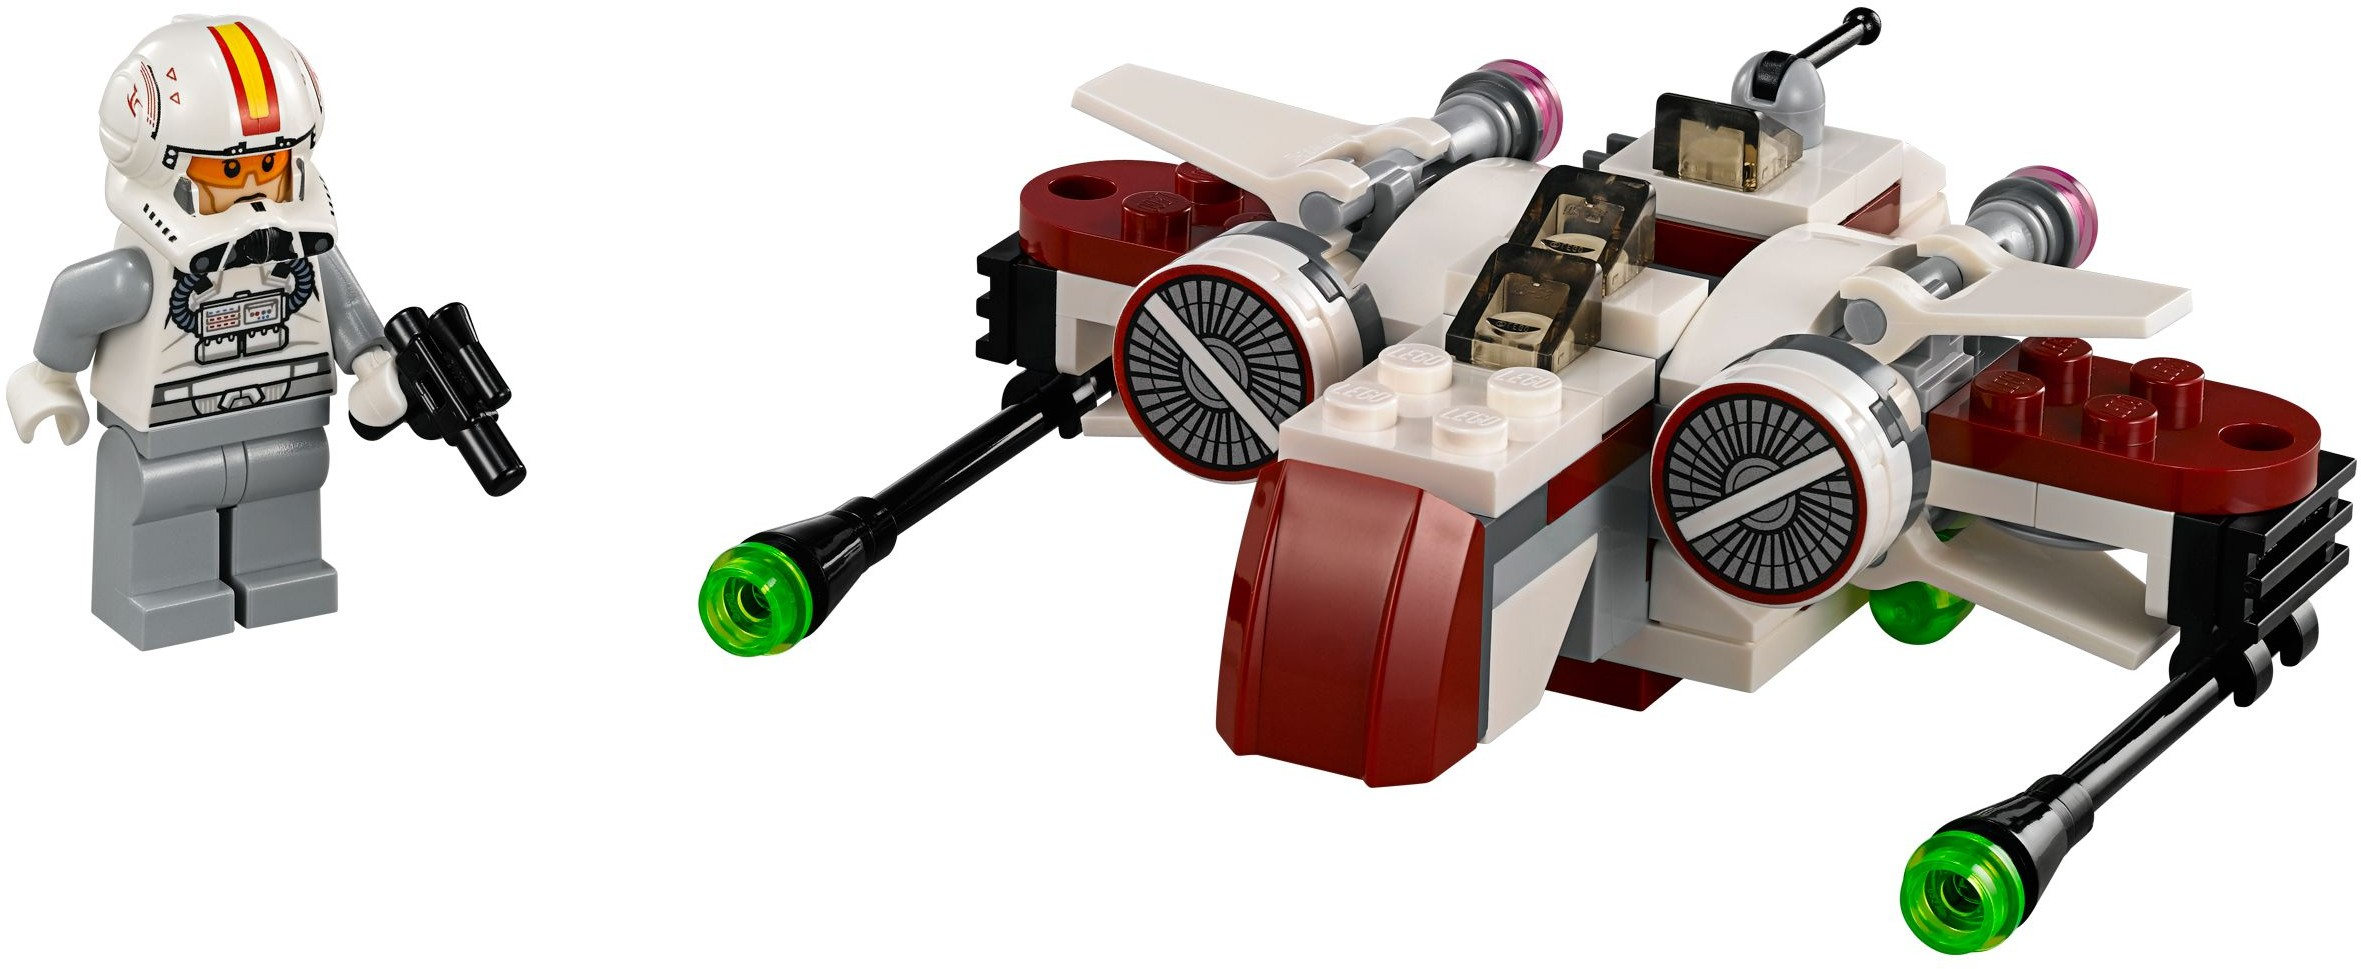 http://images.brickset.com/sets/AdditionalImages/75072-1/75072_main.jpg